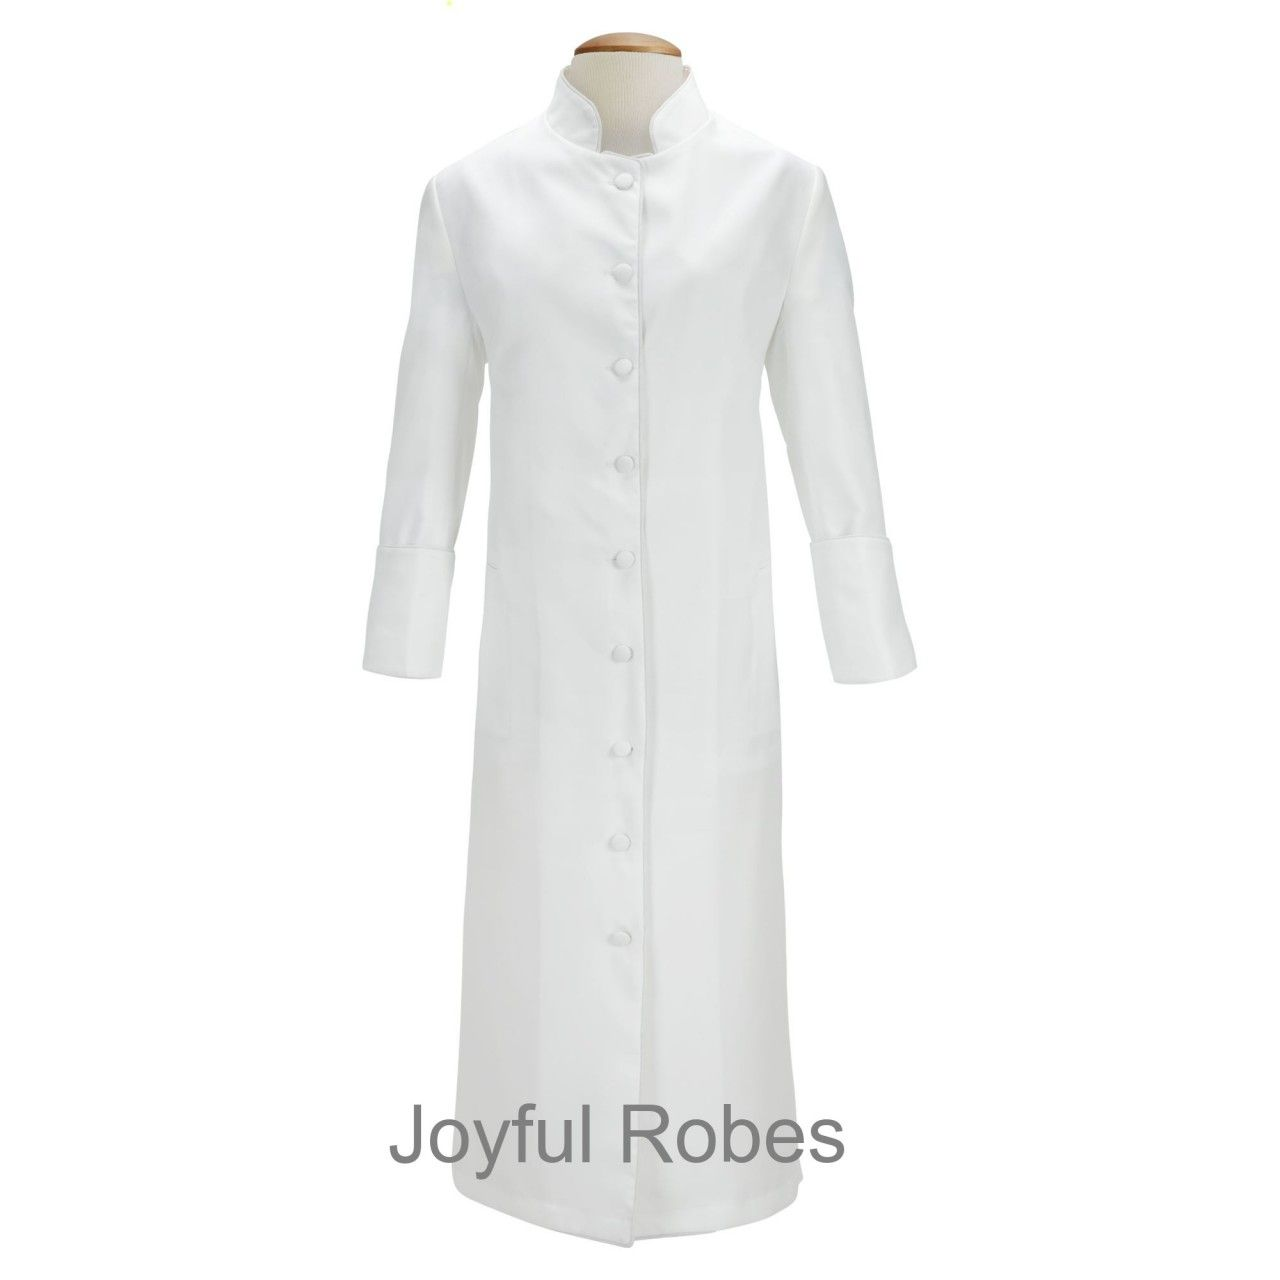 102 W. Women's Clergy/Pastor Robe - Solid White